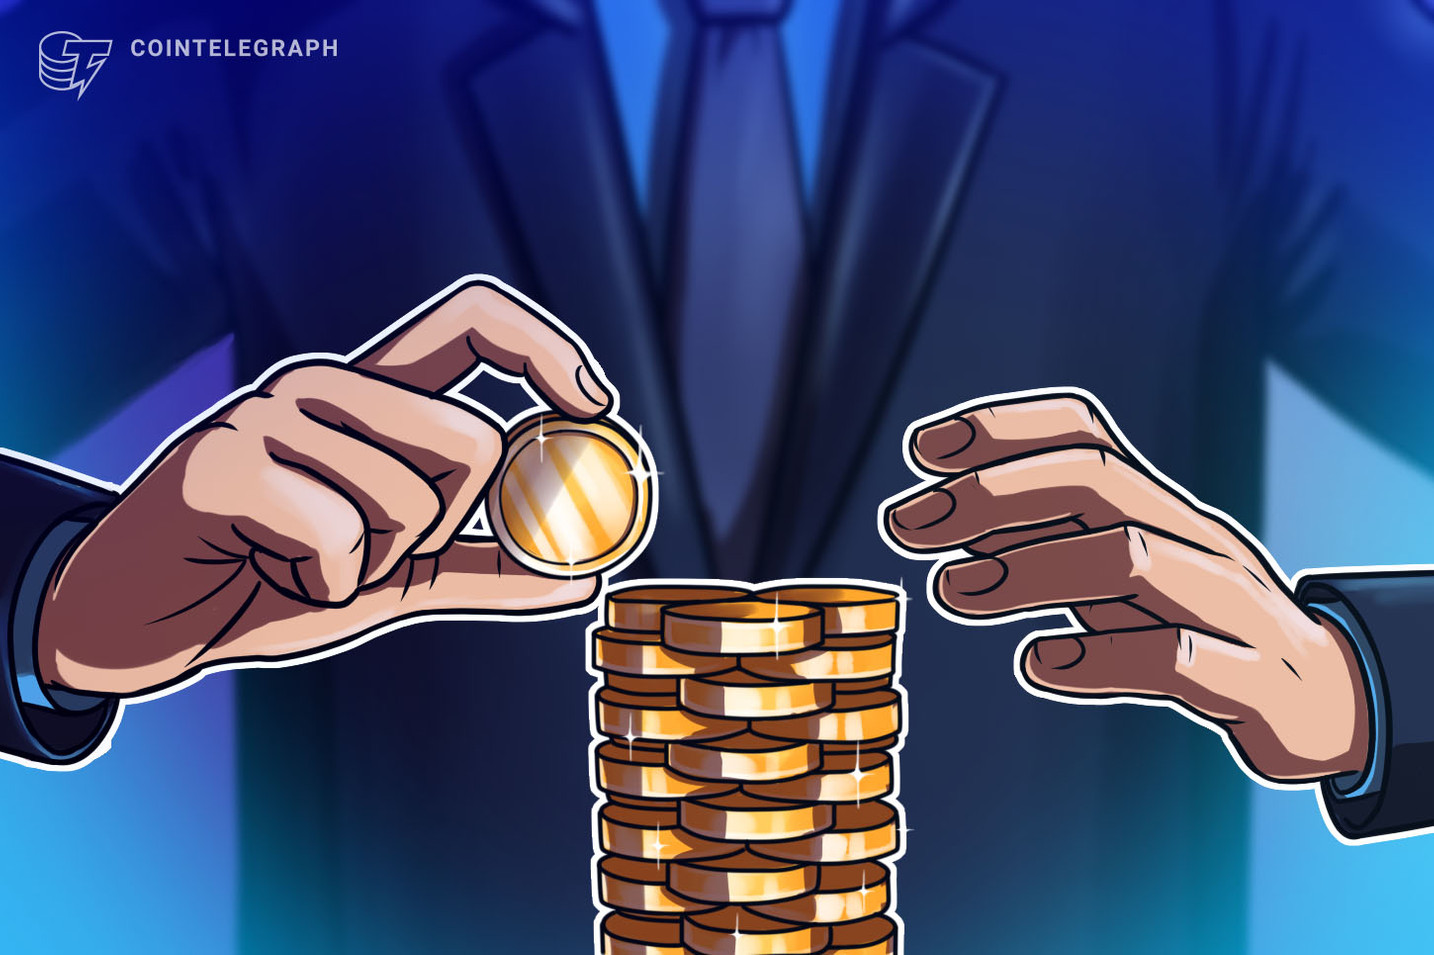 Bitcoin Miner Hut 8 Reveals $136 Million Losses for 2018, Eyes Market Uptrend